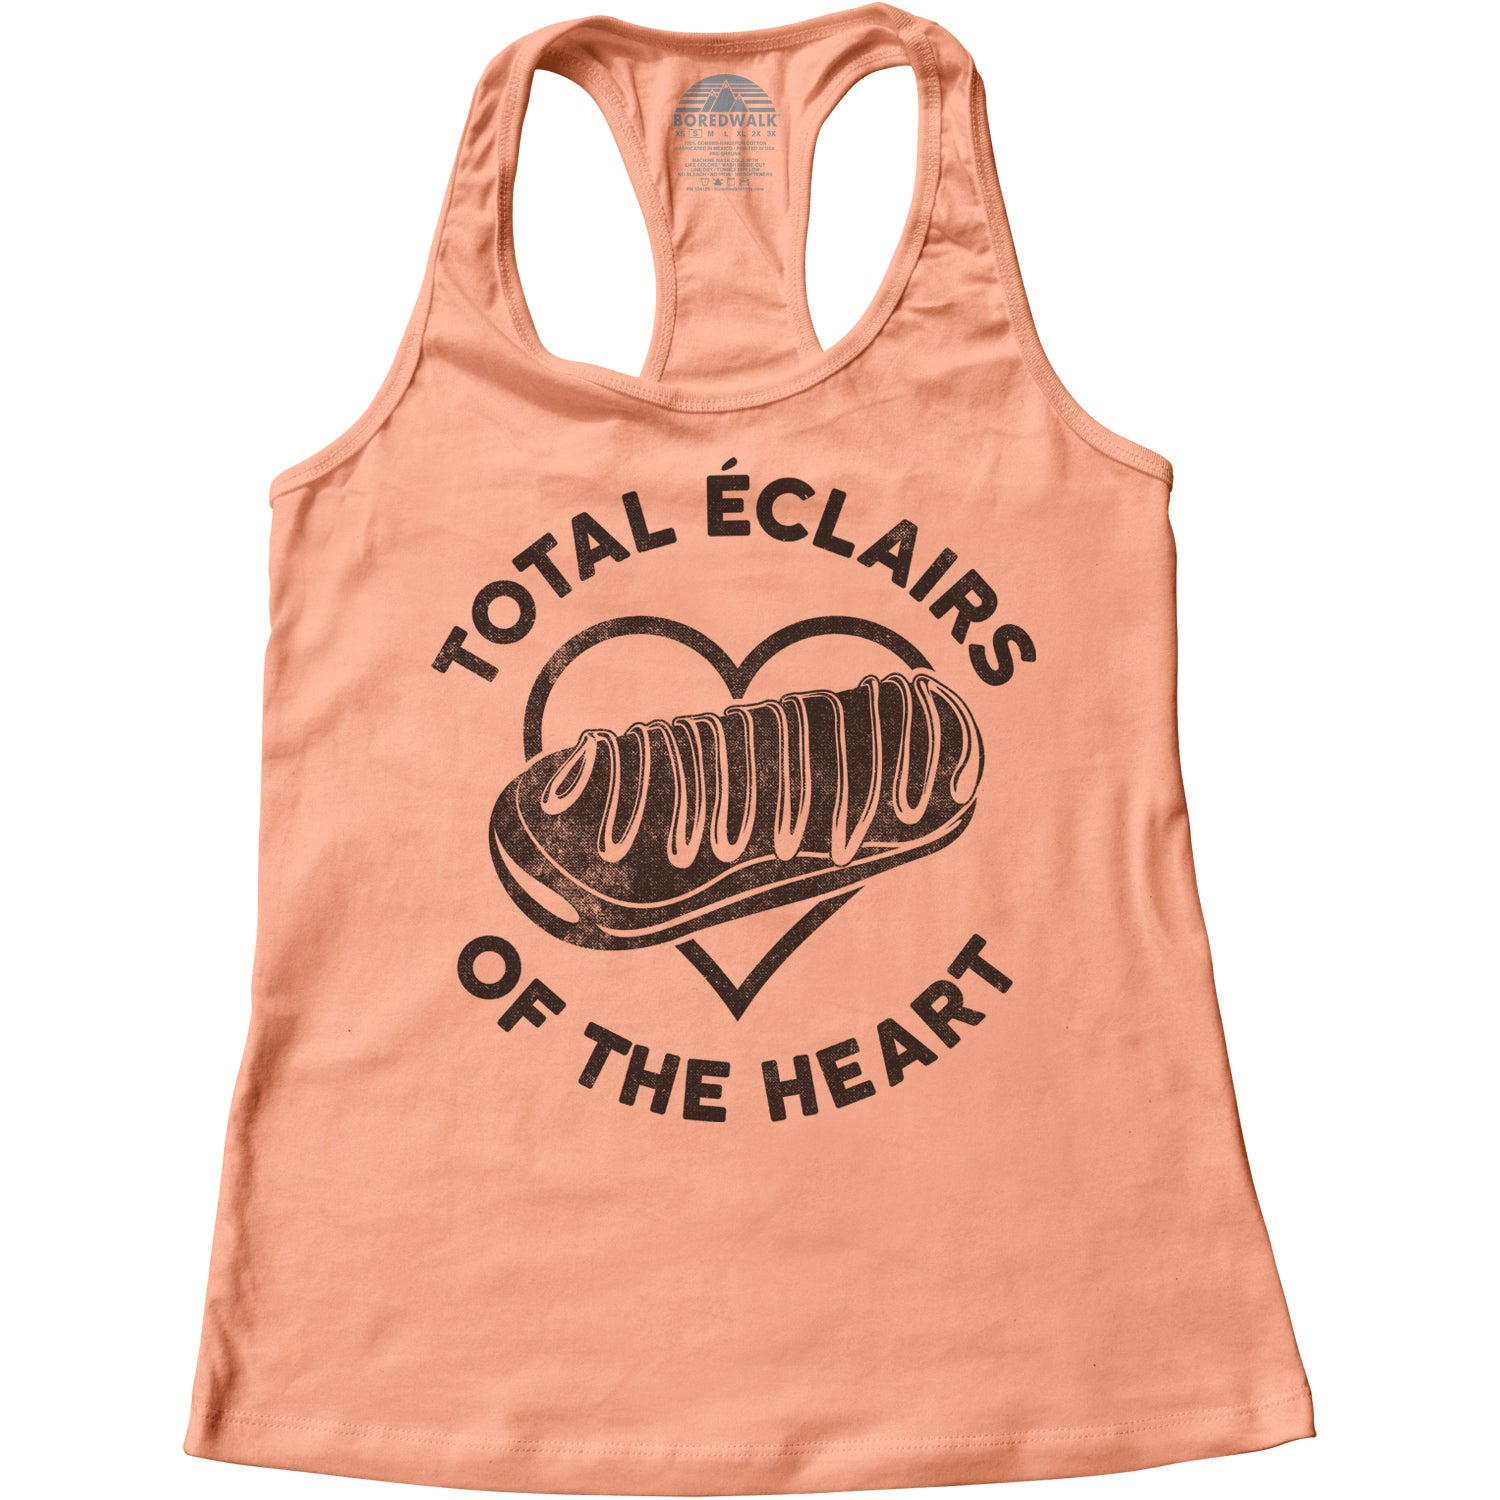 Women's Total Eclairs of the Heart Donut Shirt Racerback Tank Top